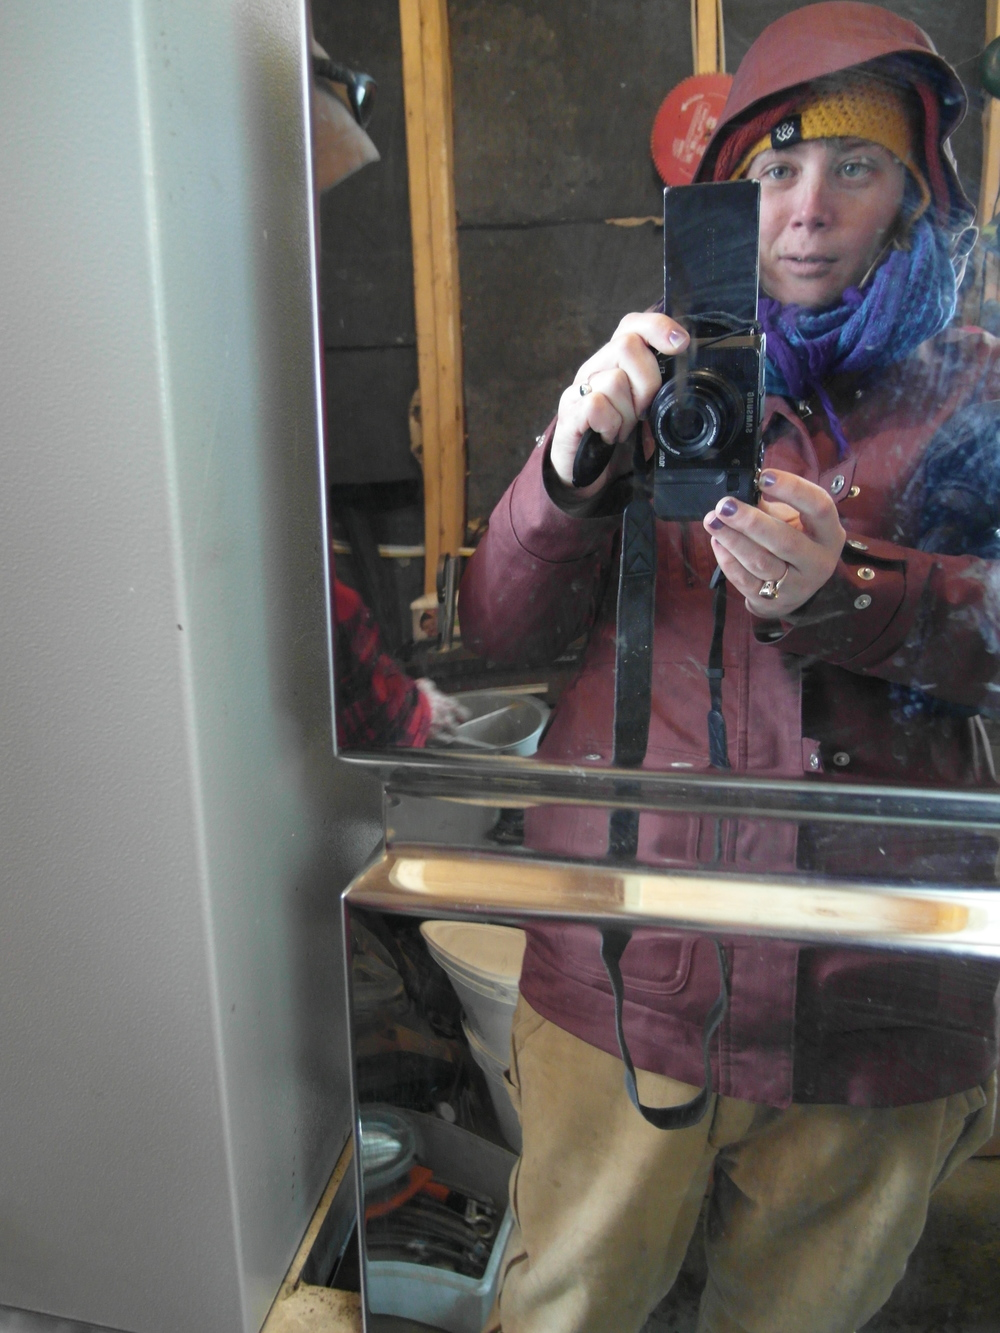 An icy selfie taken in the stainless steel reflection of the Reverse Osmosis machine.